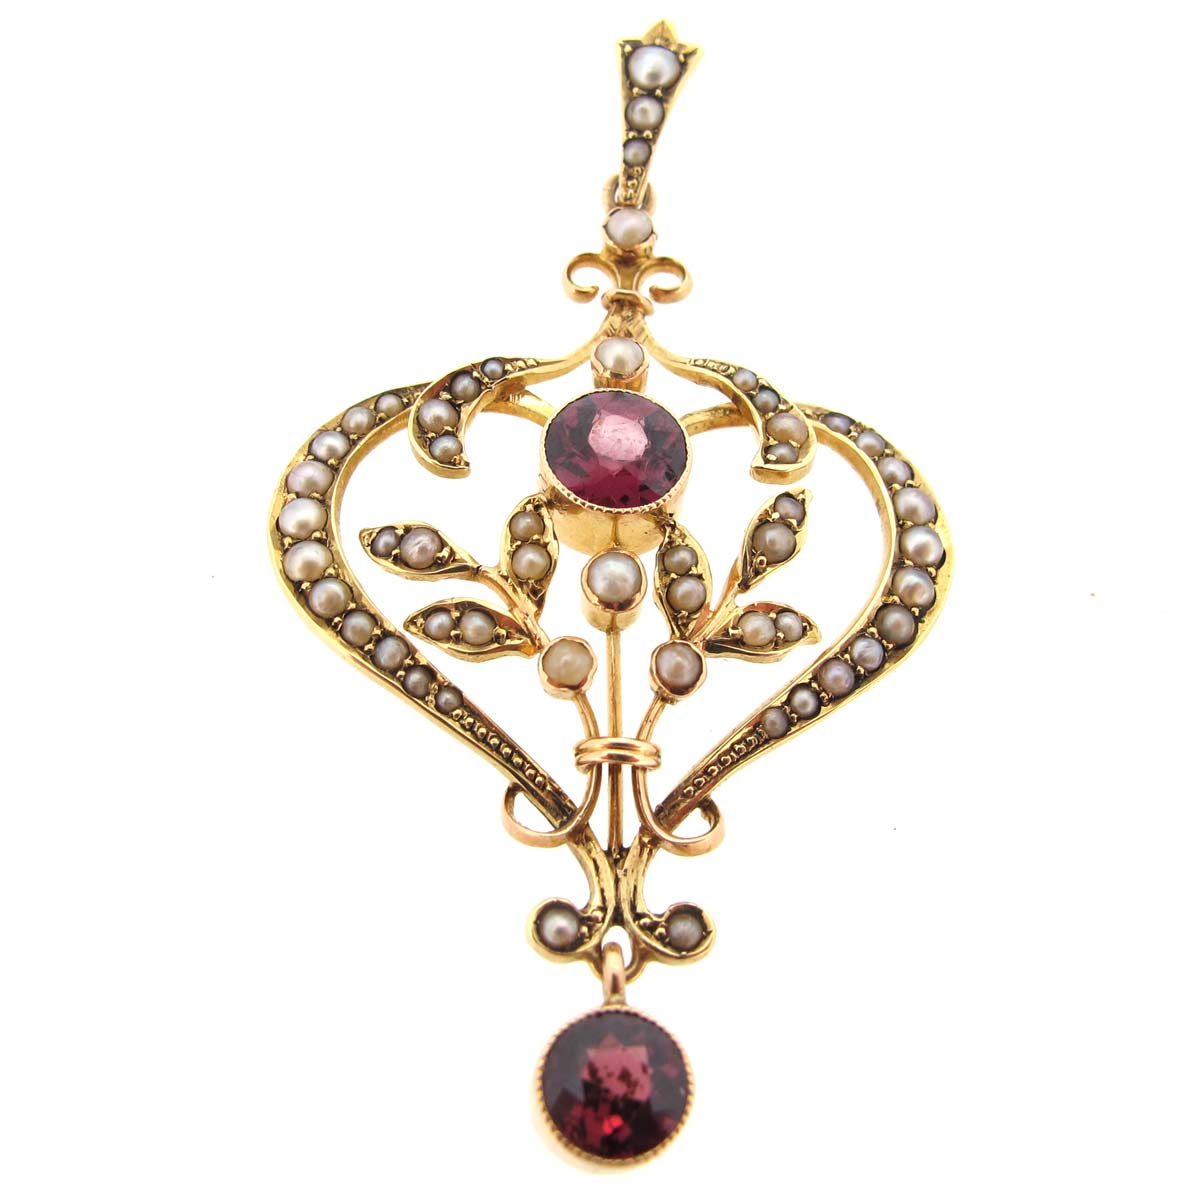 antique gold, garnet & seed pearl pendant